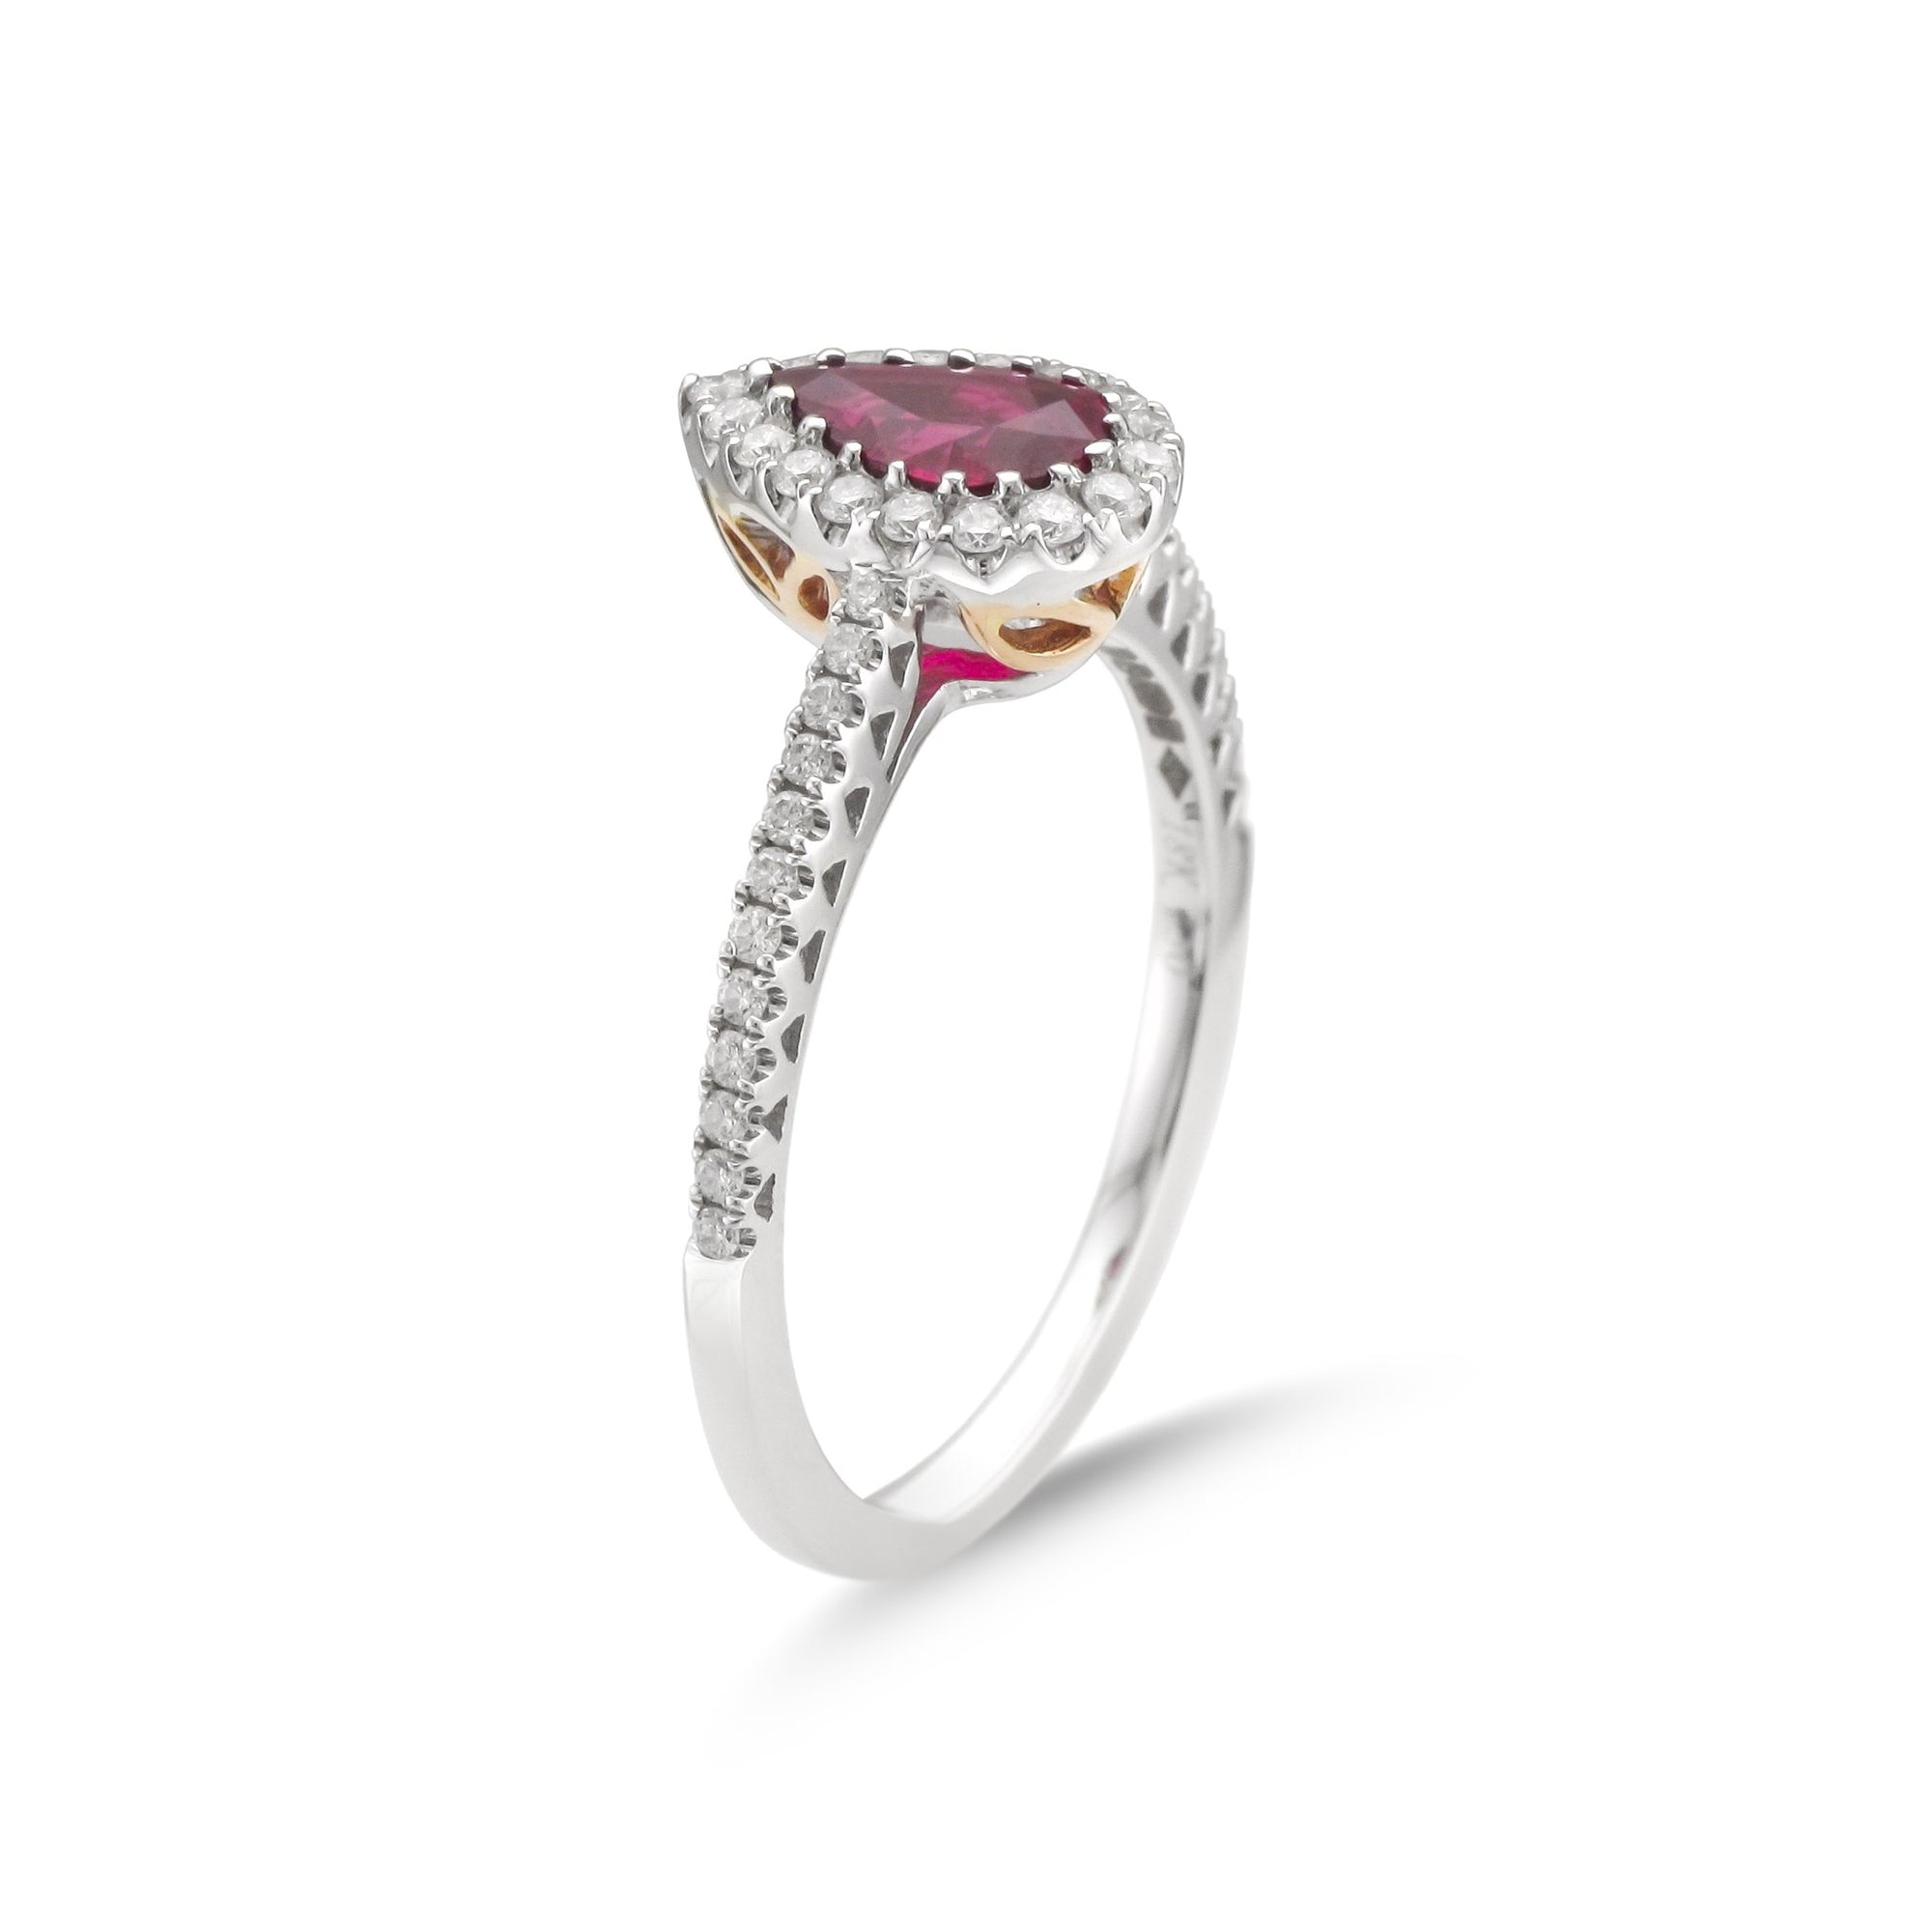 Vintage 18ct White Gold Ruby and Diamond Ring